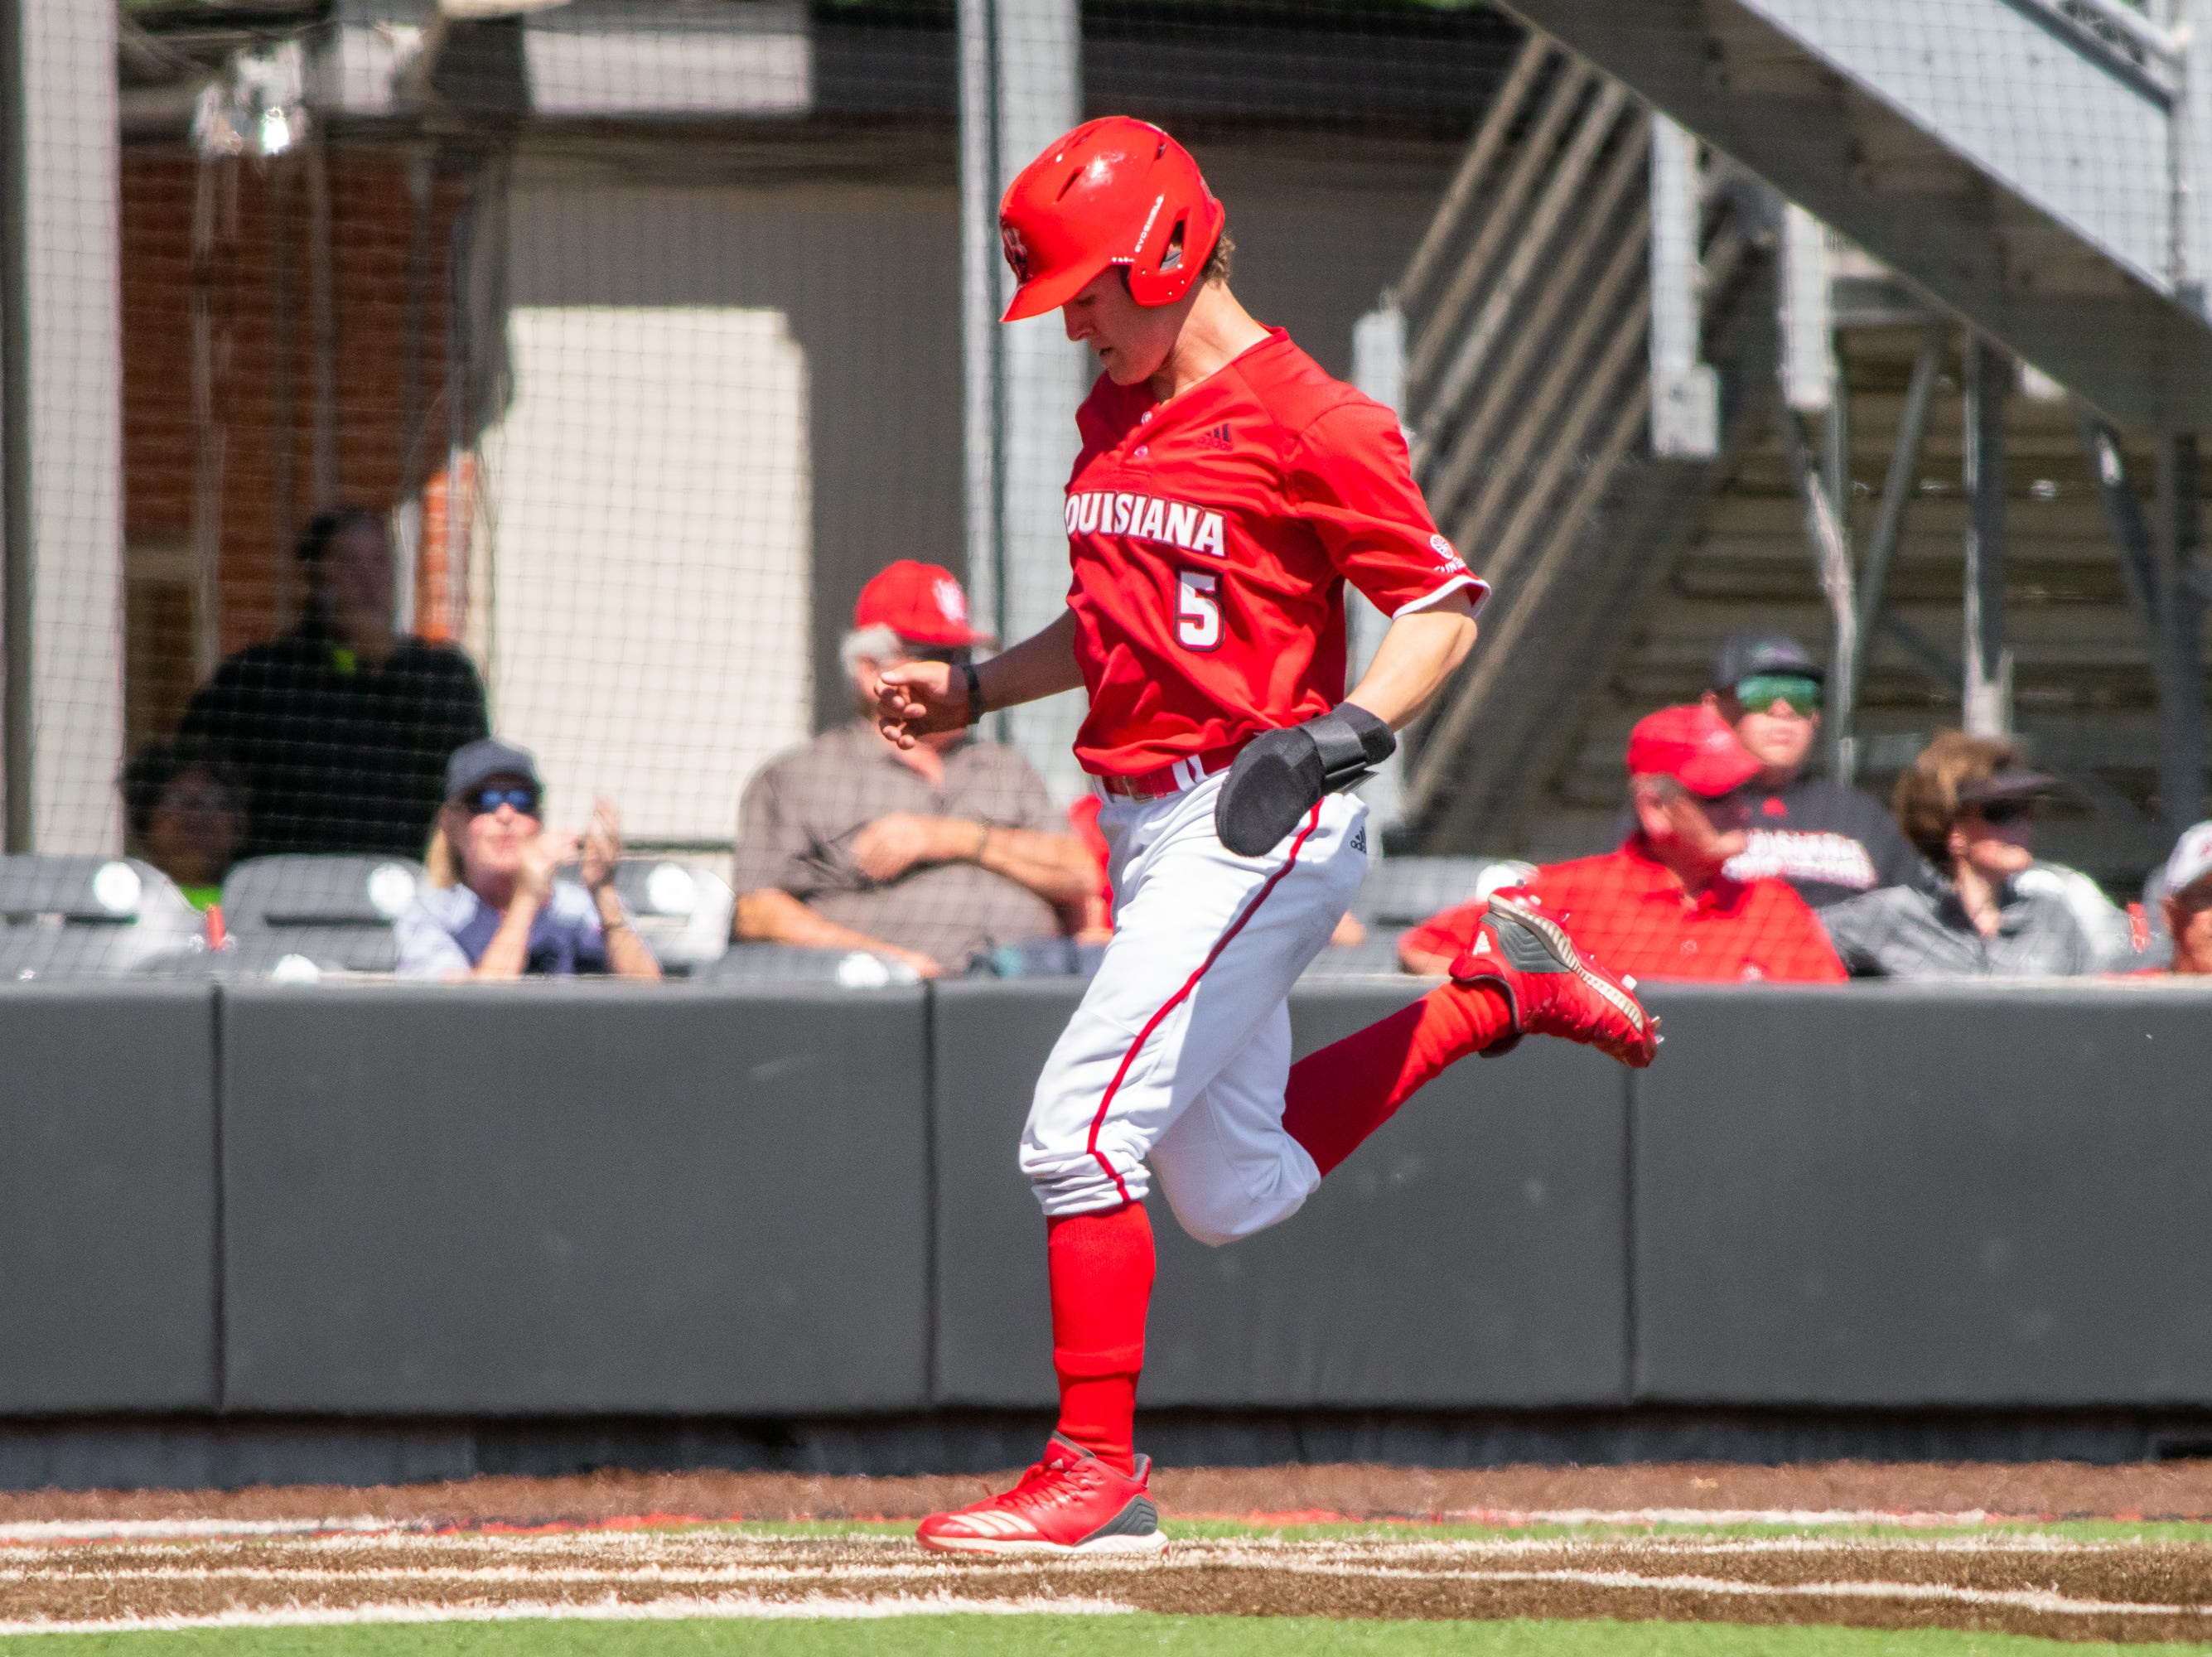 """UL's Hayden Cantrelle tags home plate to score as the Ragin' Cajuns take on the South Alabama Jaguars at M.L. """"Tigue"""" Moore Field on Sunday, April 14, 2019."""